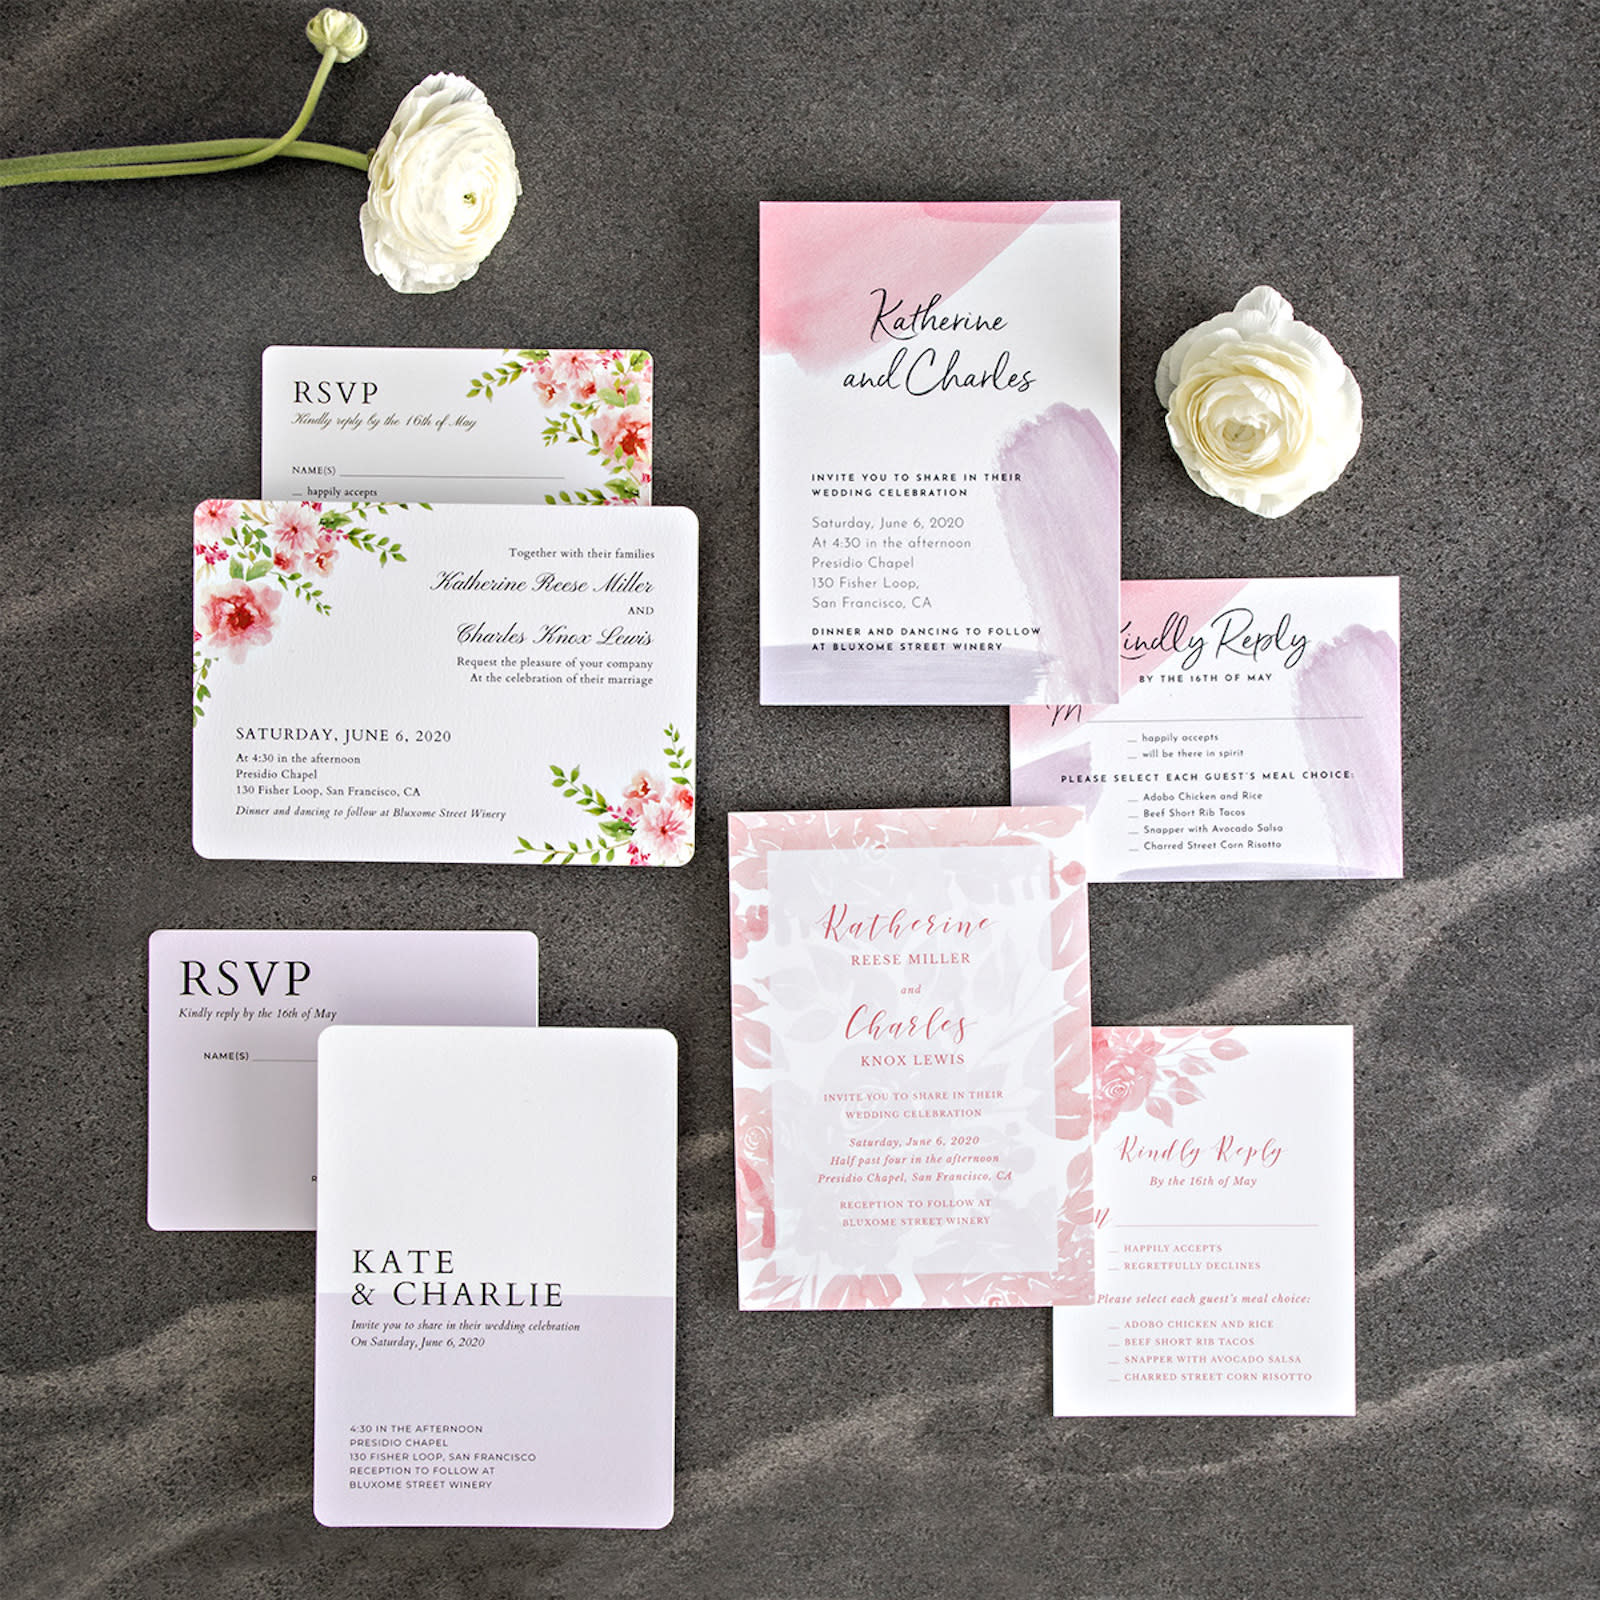 How Much Do Wedding Invitations Cost Zola Expert